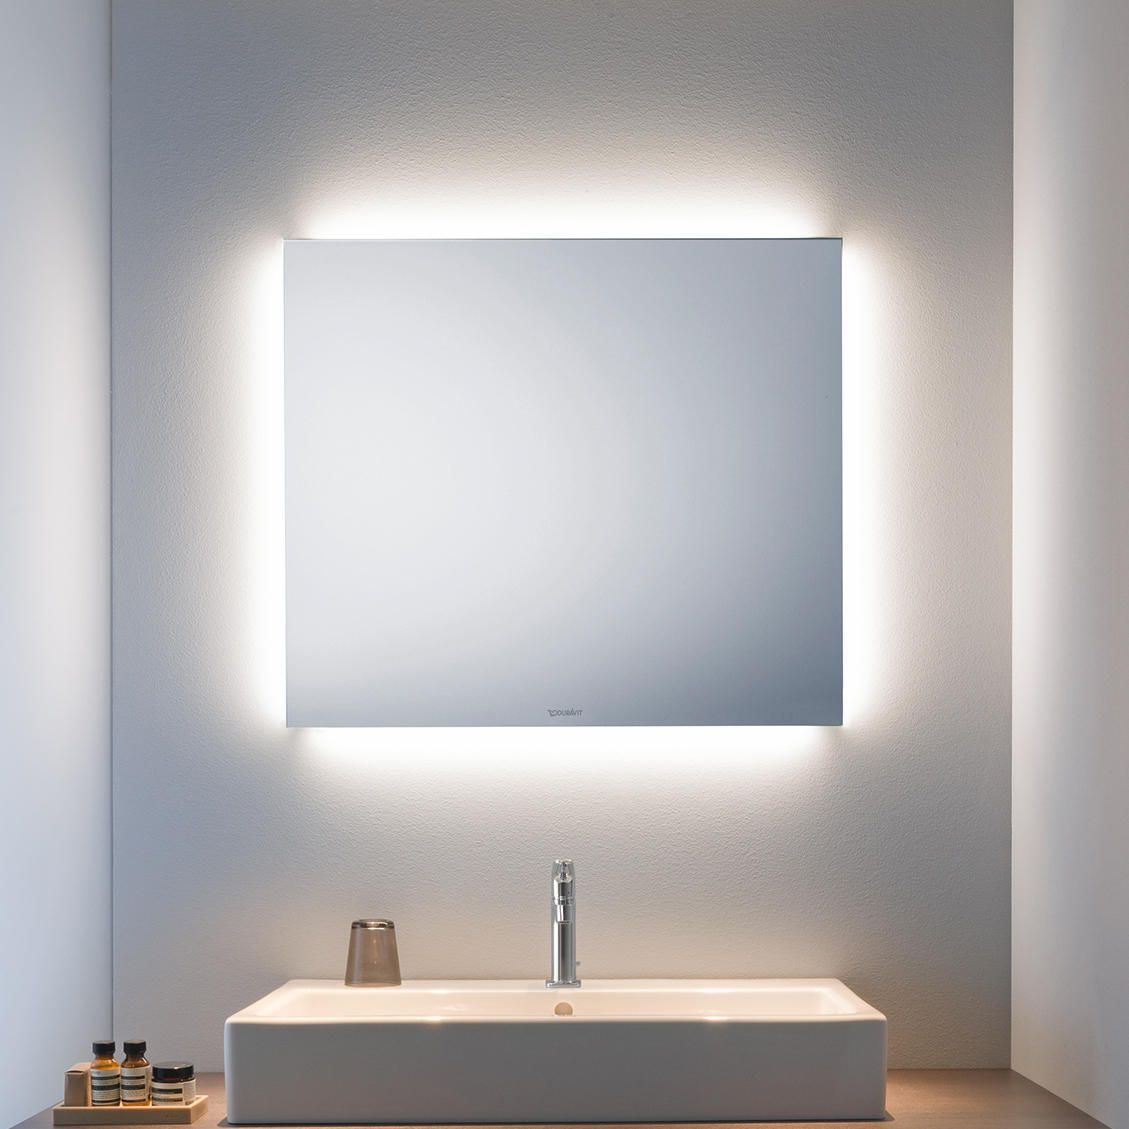 Pin By Operation Home On Bathroom Mirrors Bathroom Mirrors Diy Bathroom Design Bathroom Mirror